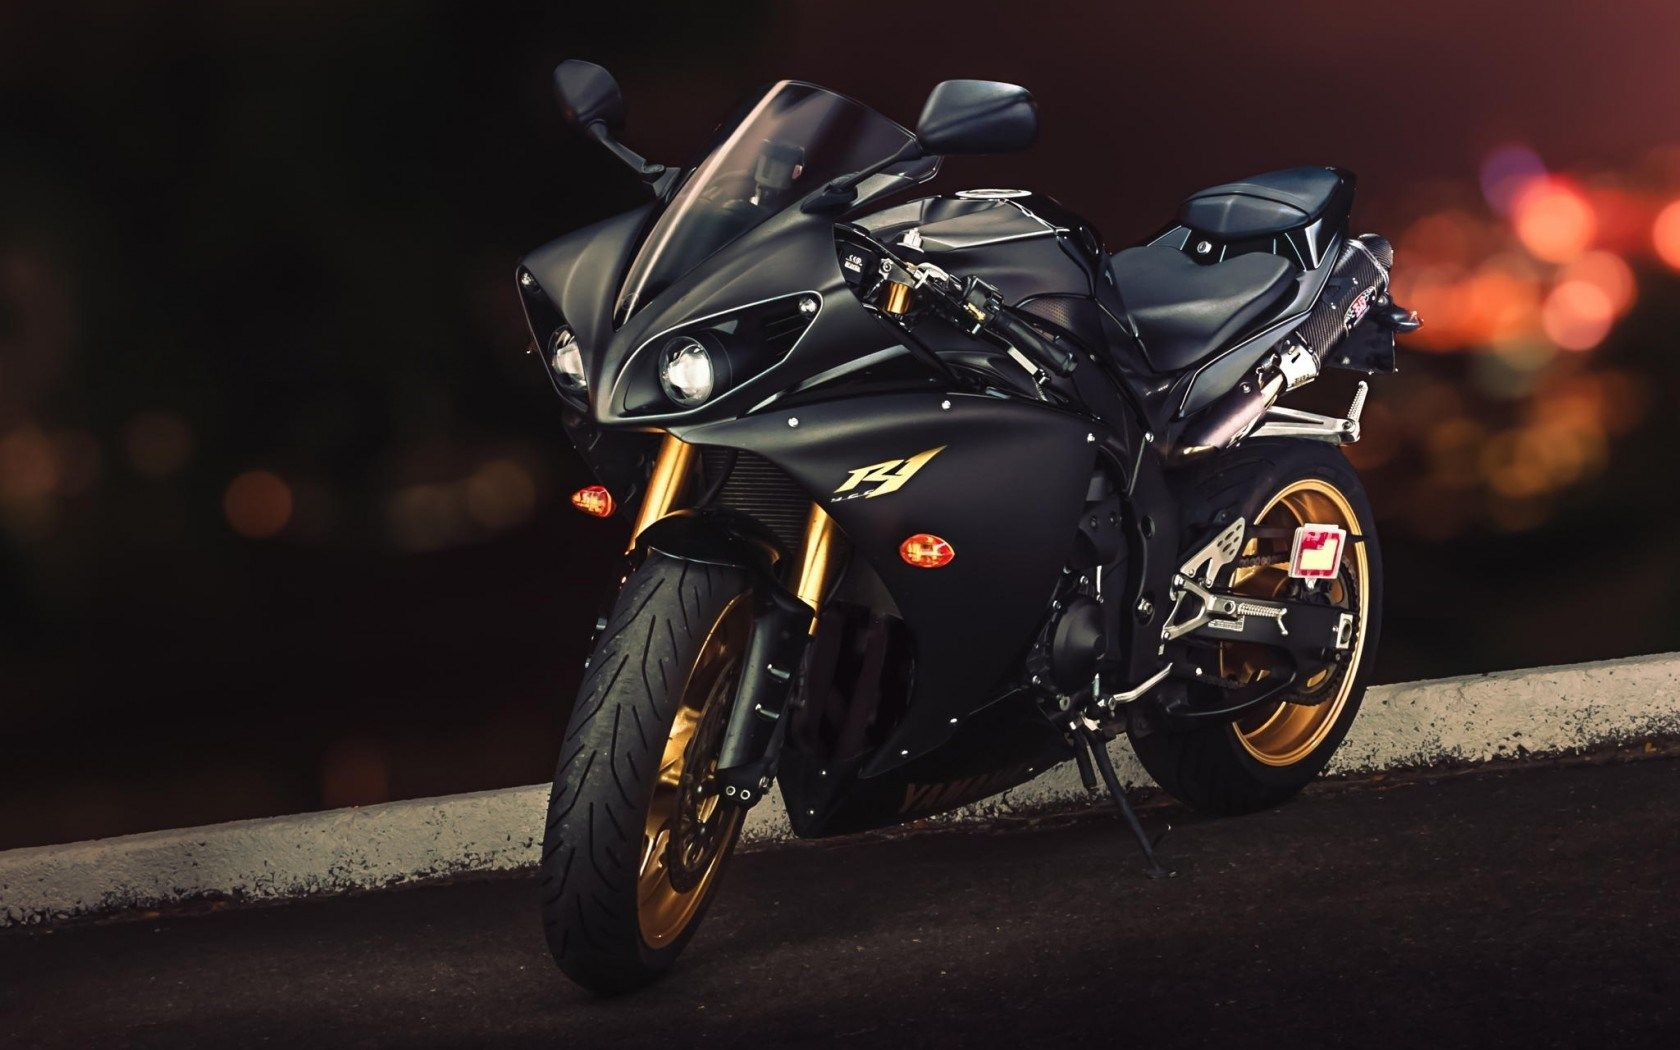 Yamaha Yzf R1 Bike Hd Wallpaper Dazzling Wallpaper Yamaha Yzf R1 Yamaha R1 Yamaha Fz Bike